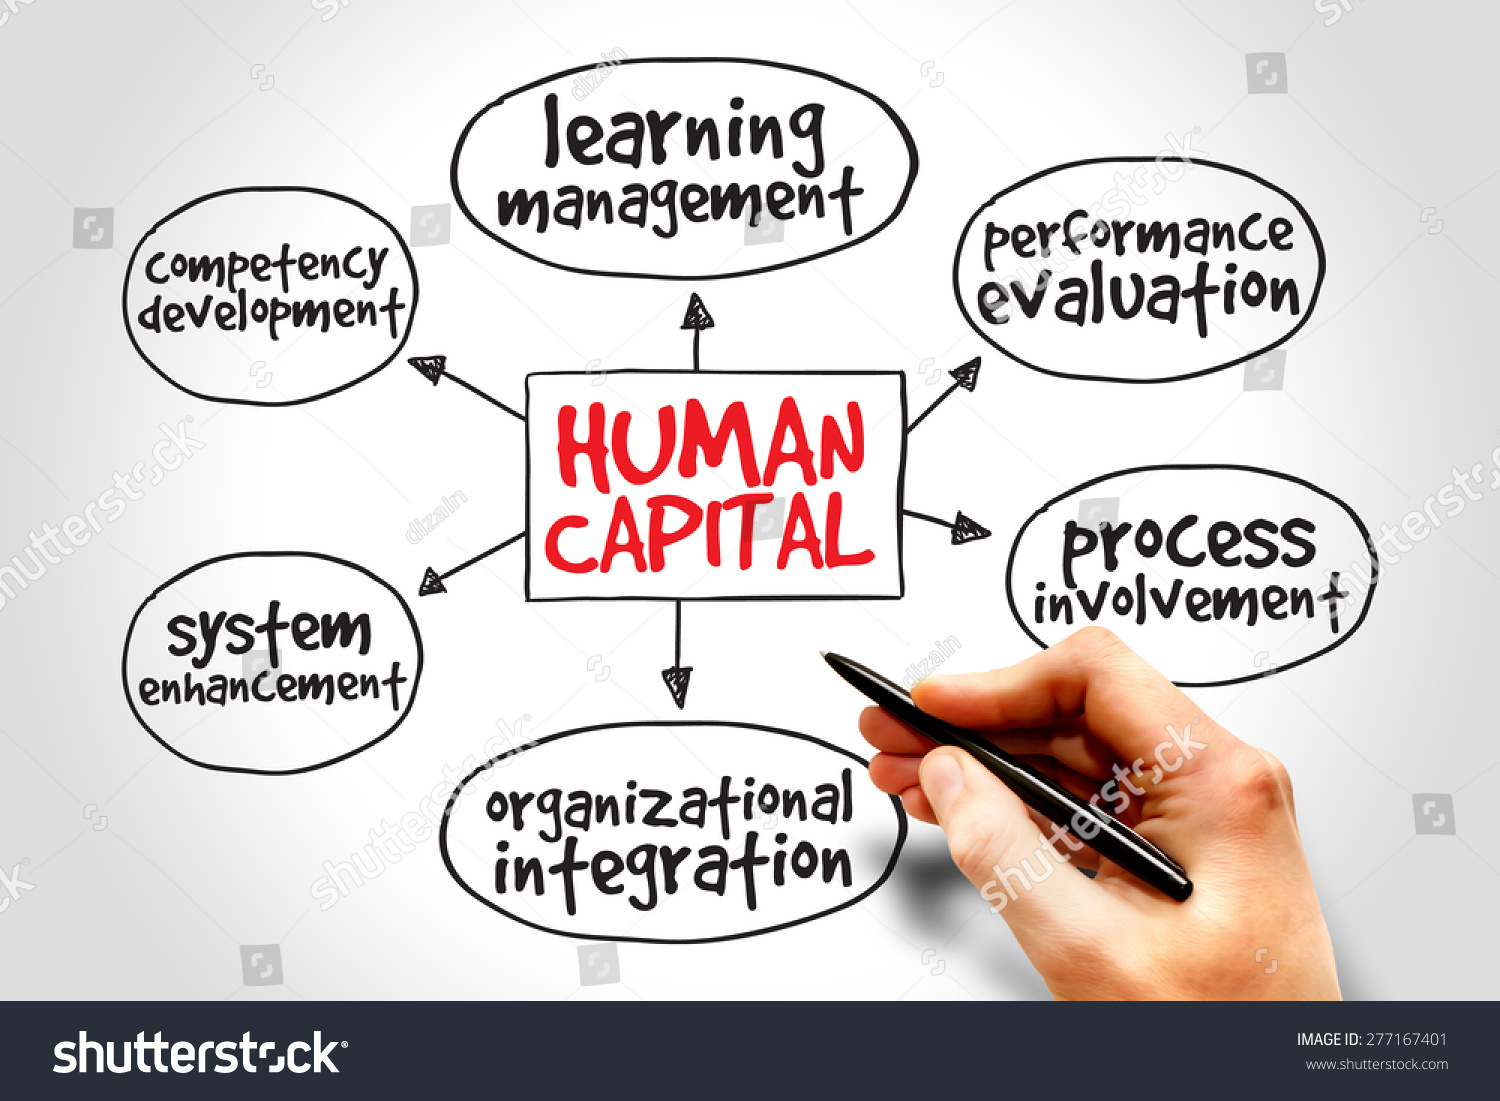 Human Capital Mind Map Business Management Stock Photo ...